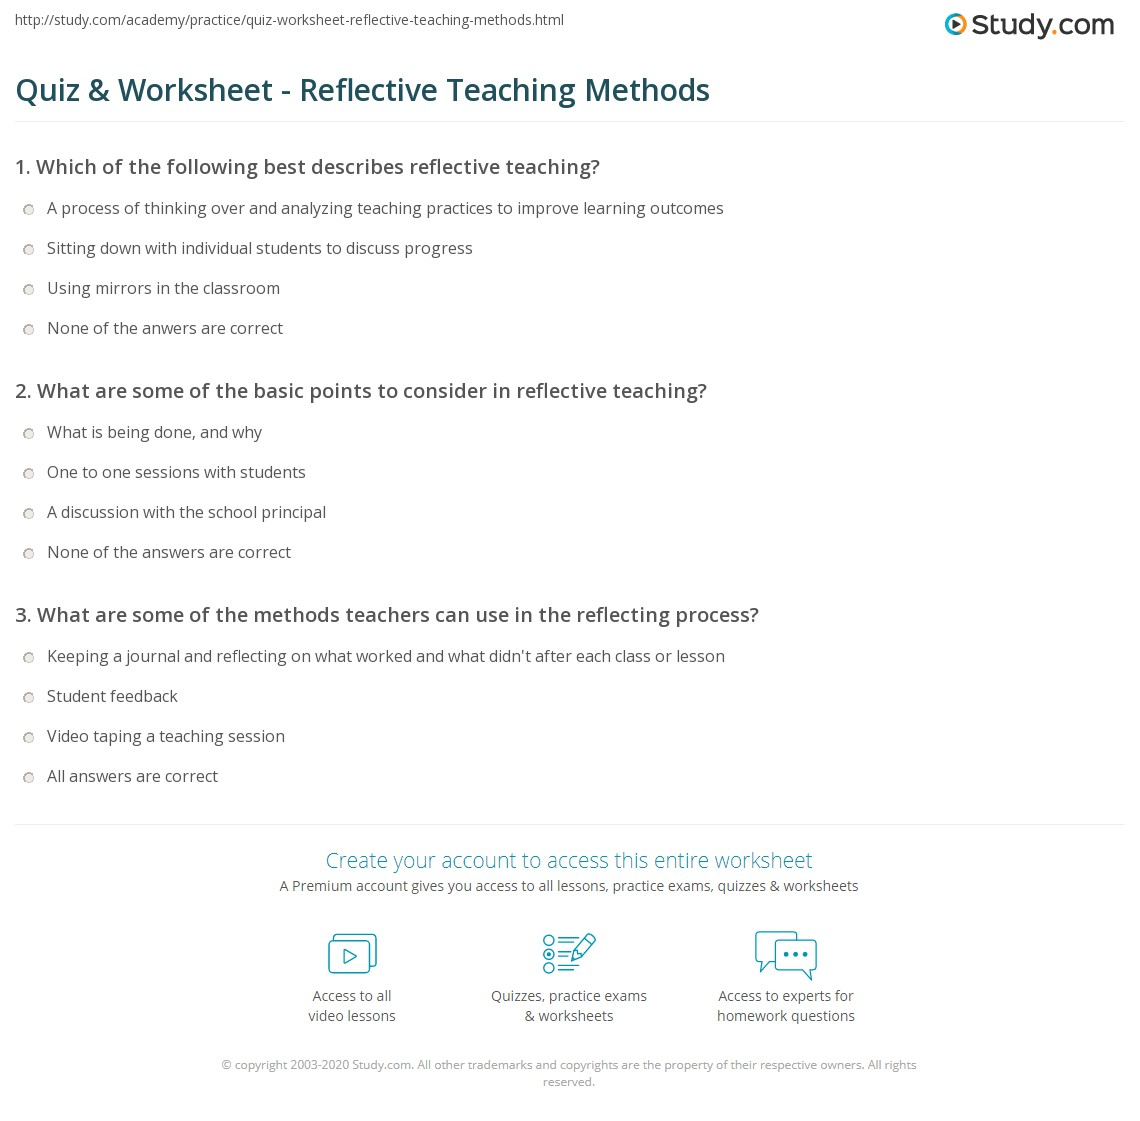 Quiz & Worksheet - Reflective Teaching Methods | Study com